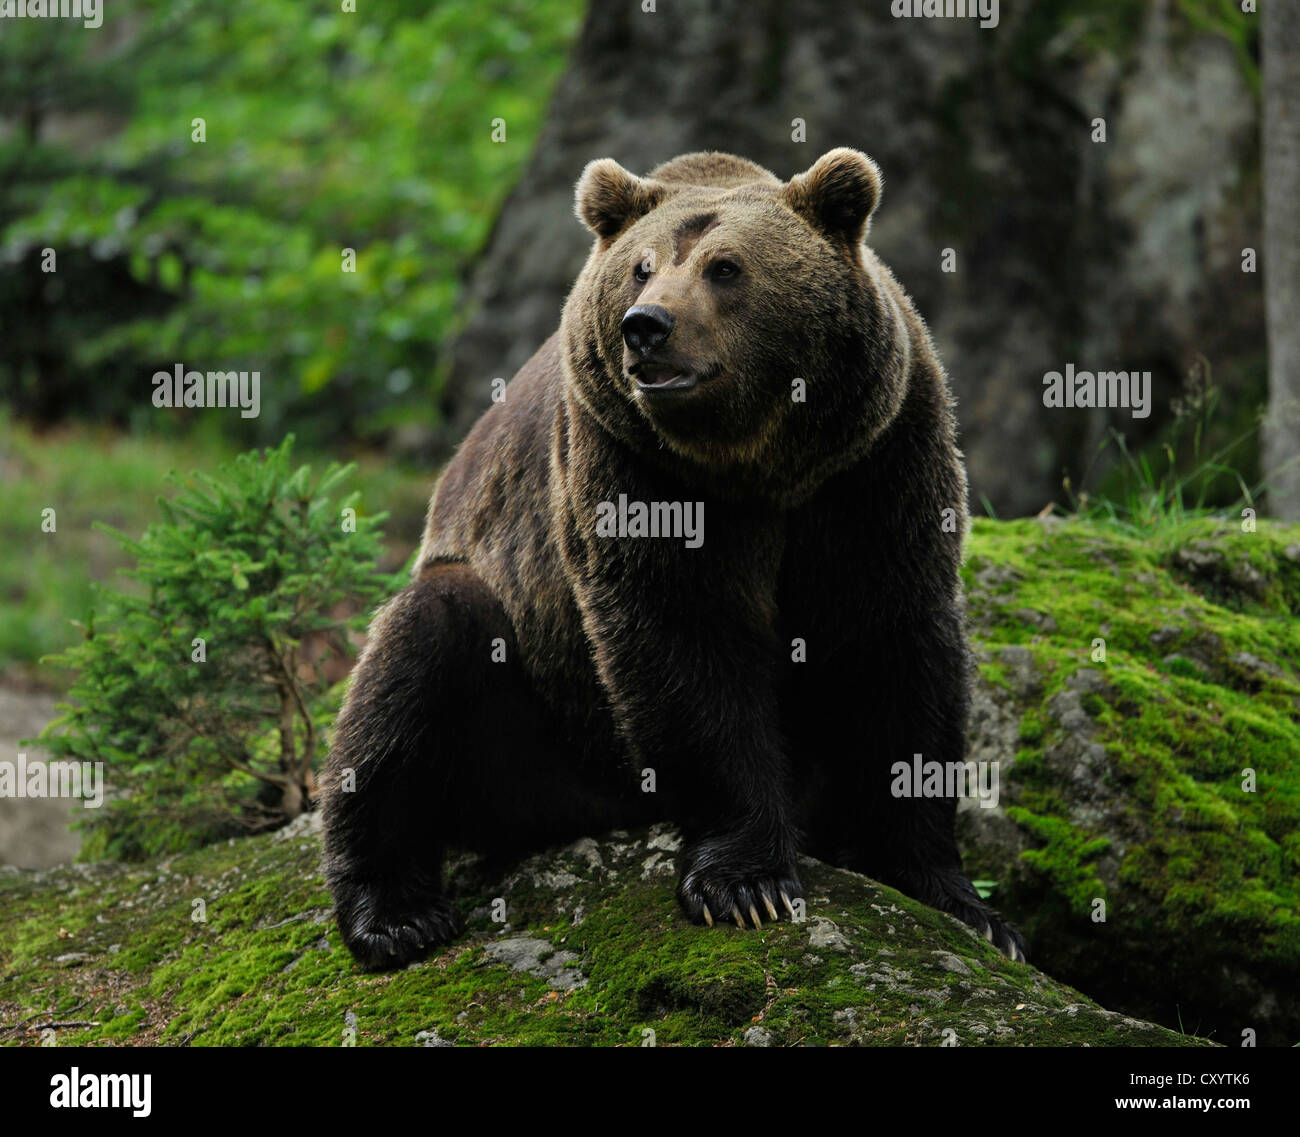 European Brown Bear (Ursus arctos), in an enclosed zone of the Bavarian Forest National Park, Bavaria - Stock Image